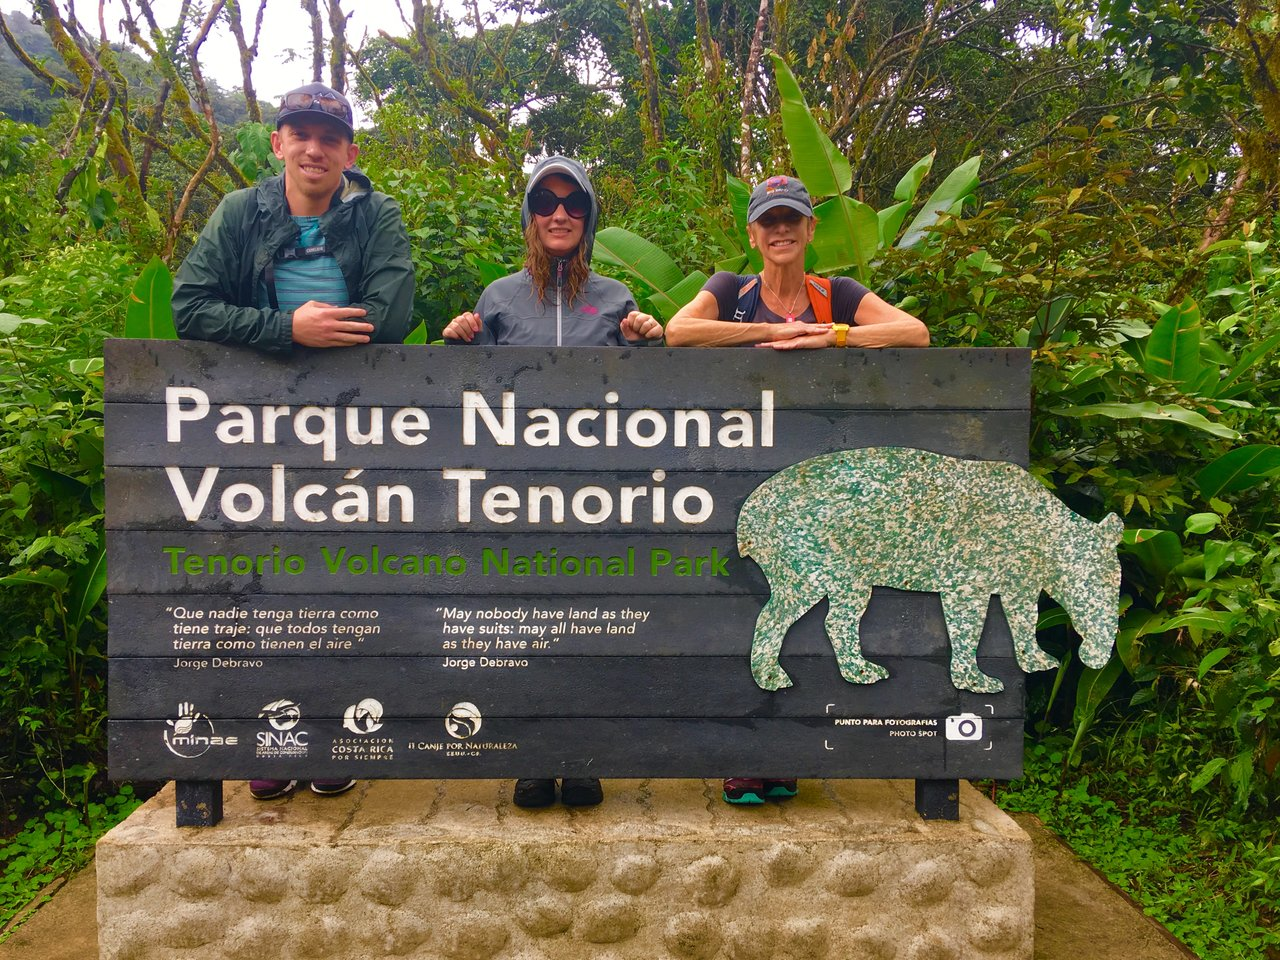 Parque Nacional de Volcan Tenorio | Photo taken by Rachel H